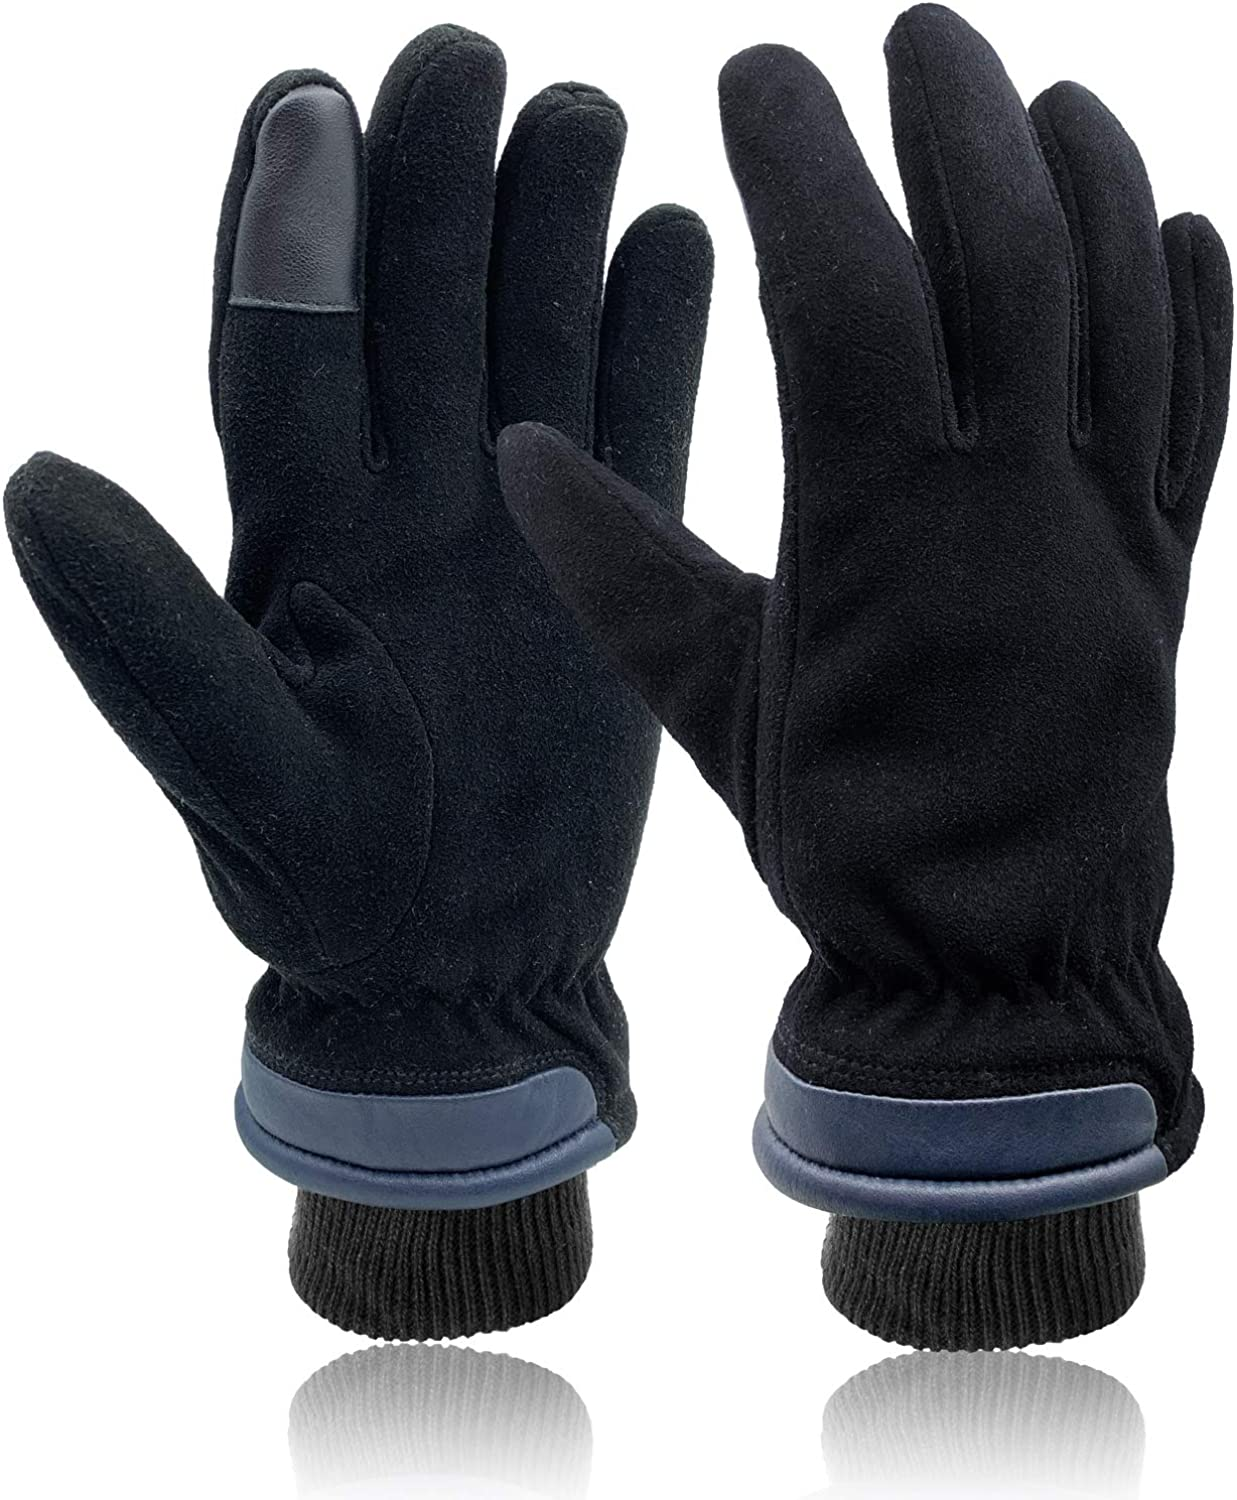 SKYDEER Super Soft Full Deerskin Suede Leather Touch Screen Warm Winter Gloves (100g 3M Thinsulate Insulation)